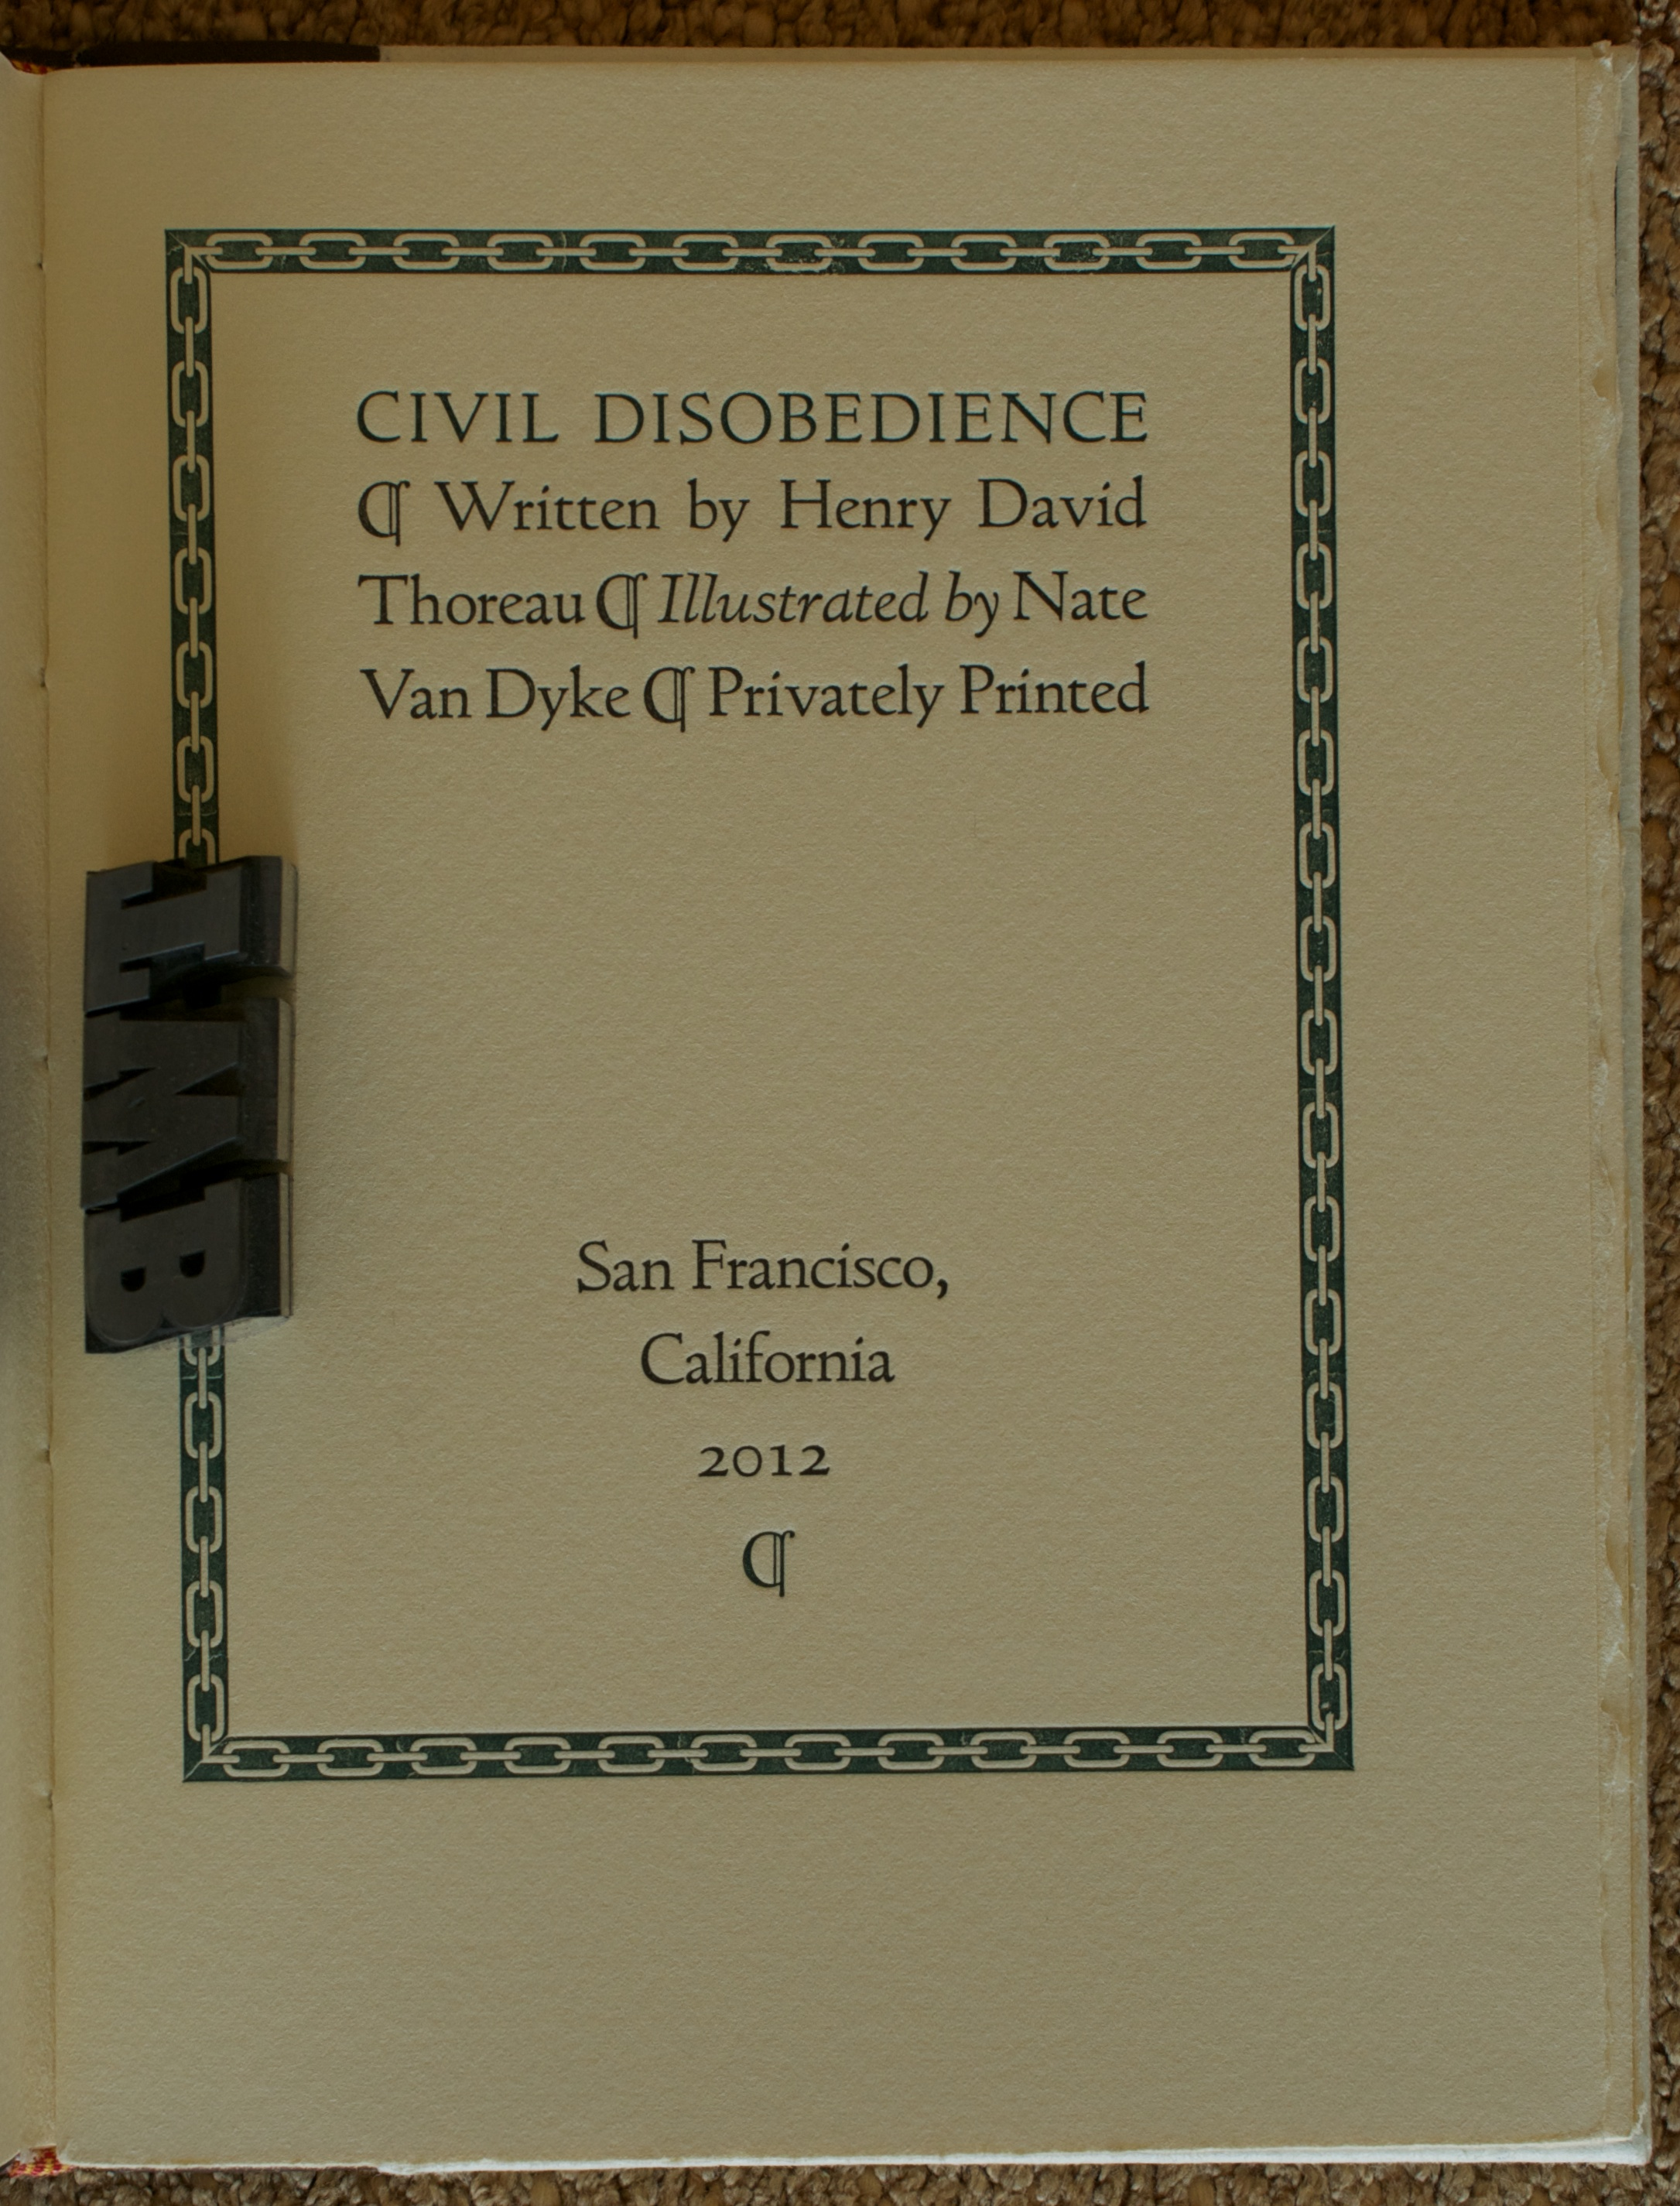 henry thoreau and civil disobedience Start studying henry david thoreau - civil disobedience learn vocabulary, terms, and more with flashcards, games, and other study tools.